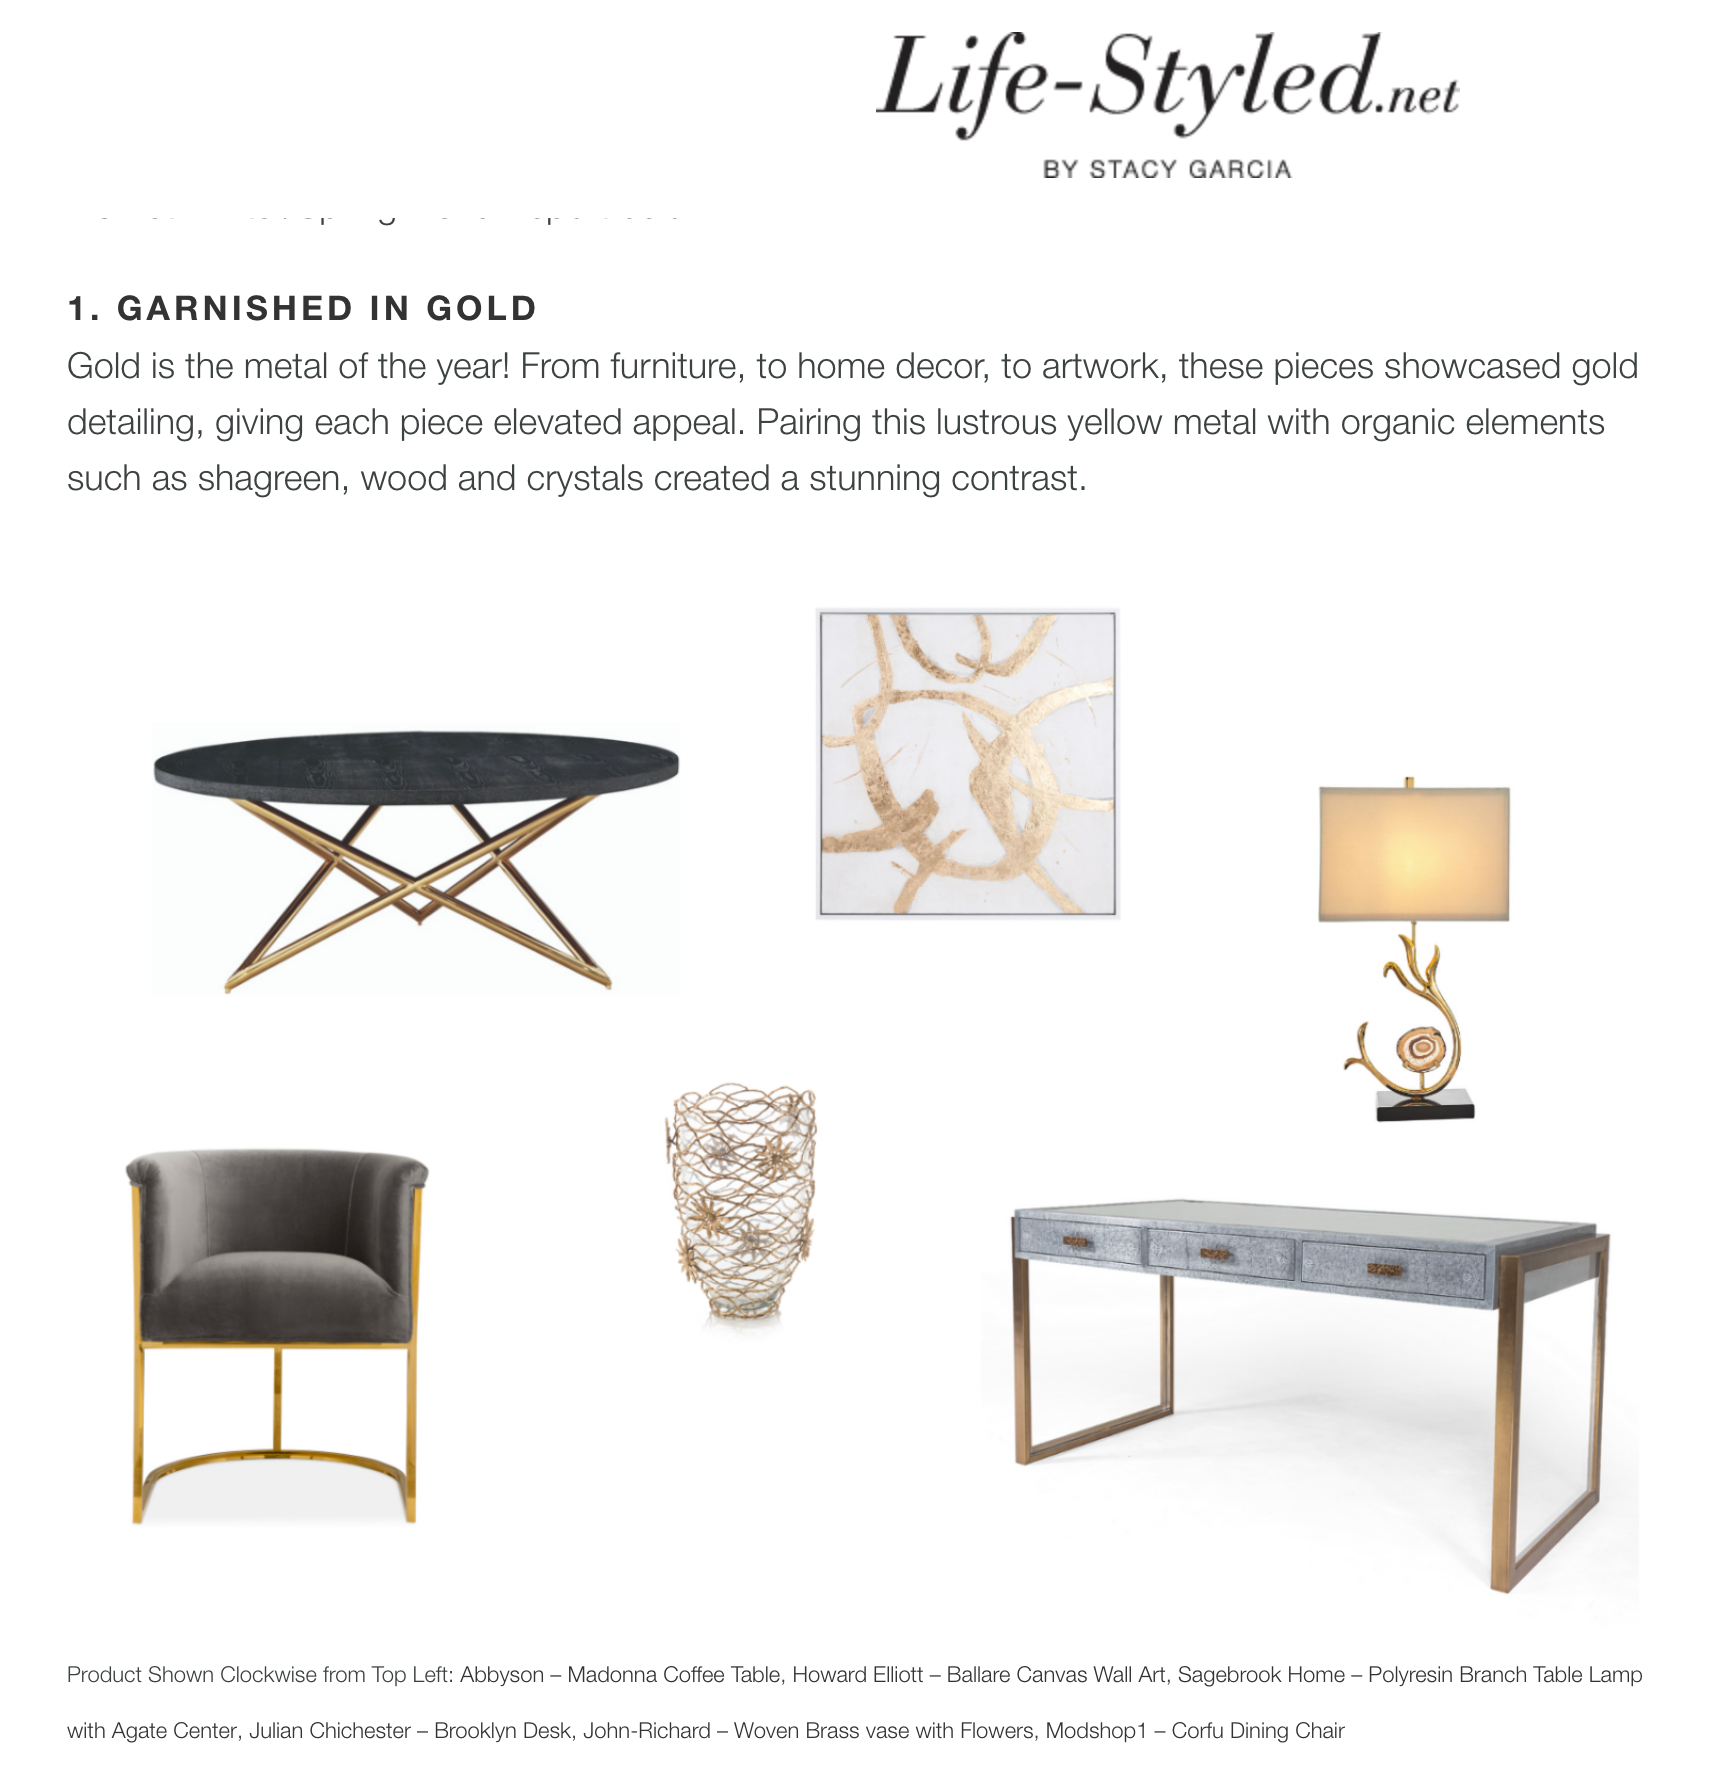 high point market style report article life-styled.net by stacy garcia featuring modshop's corfu dining chair